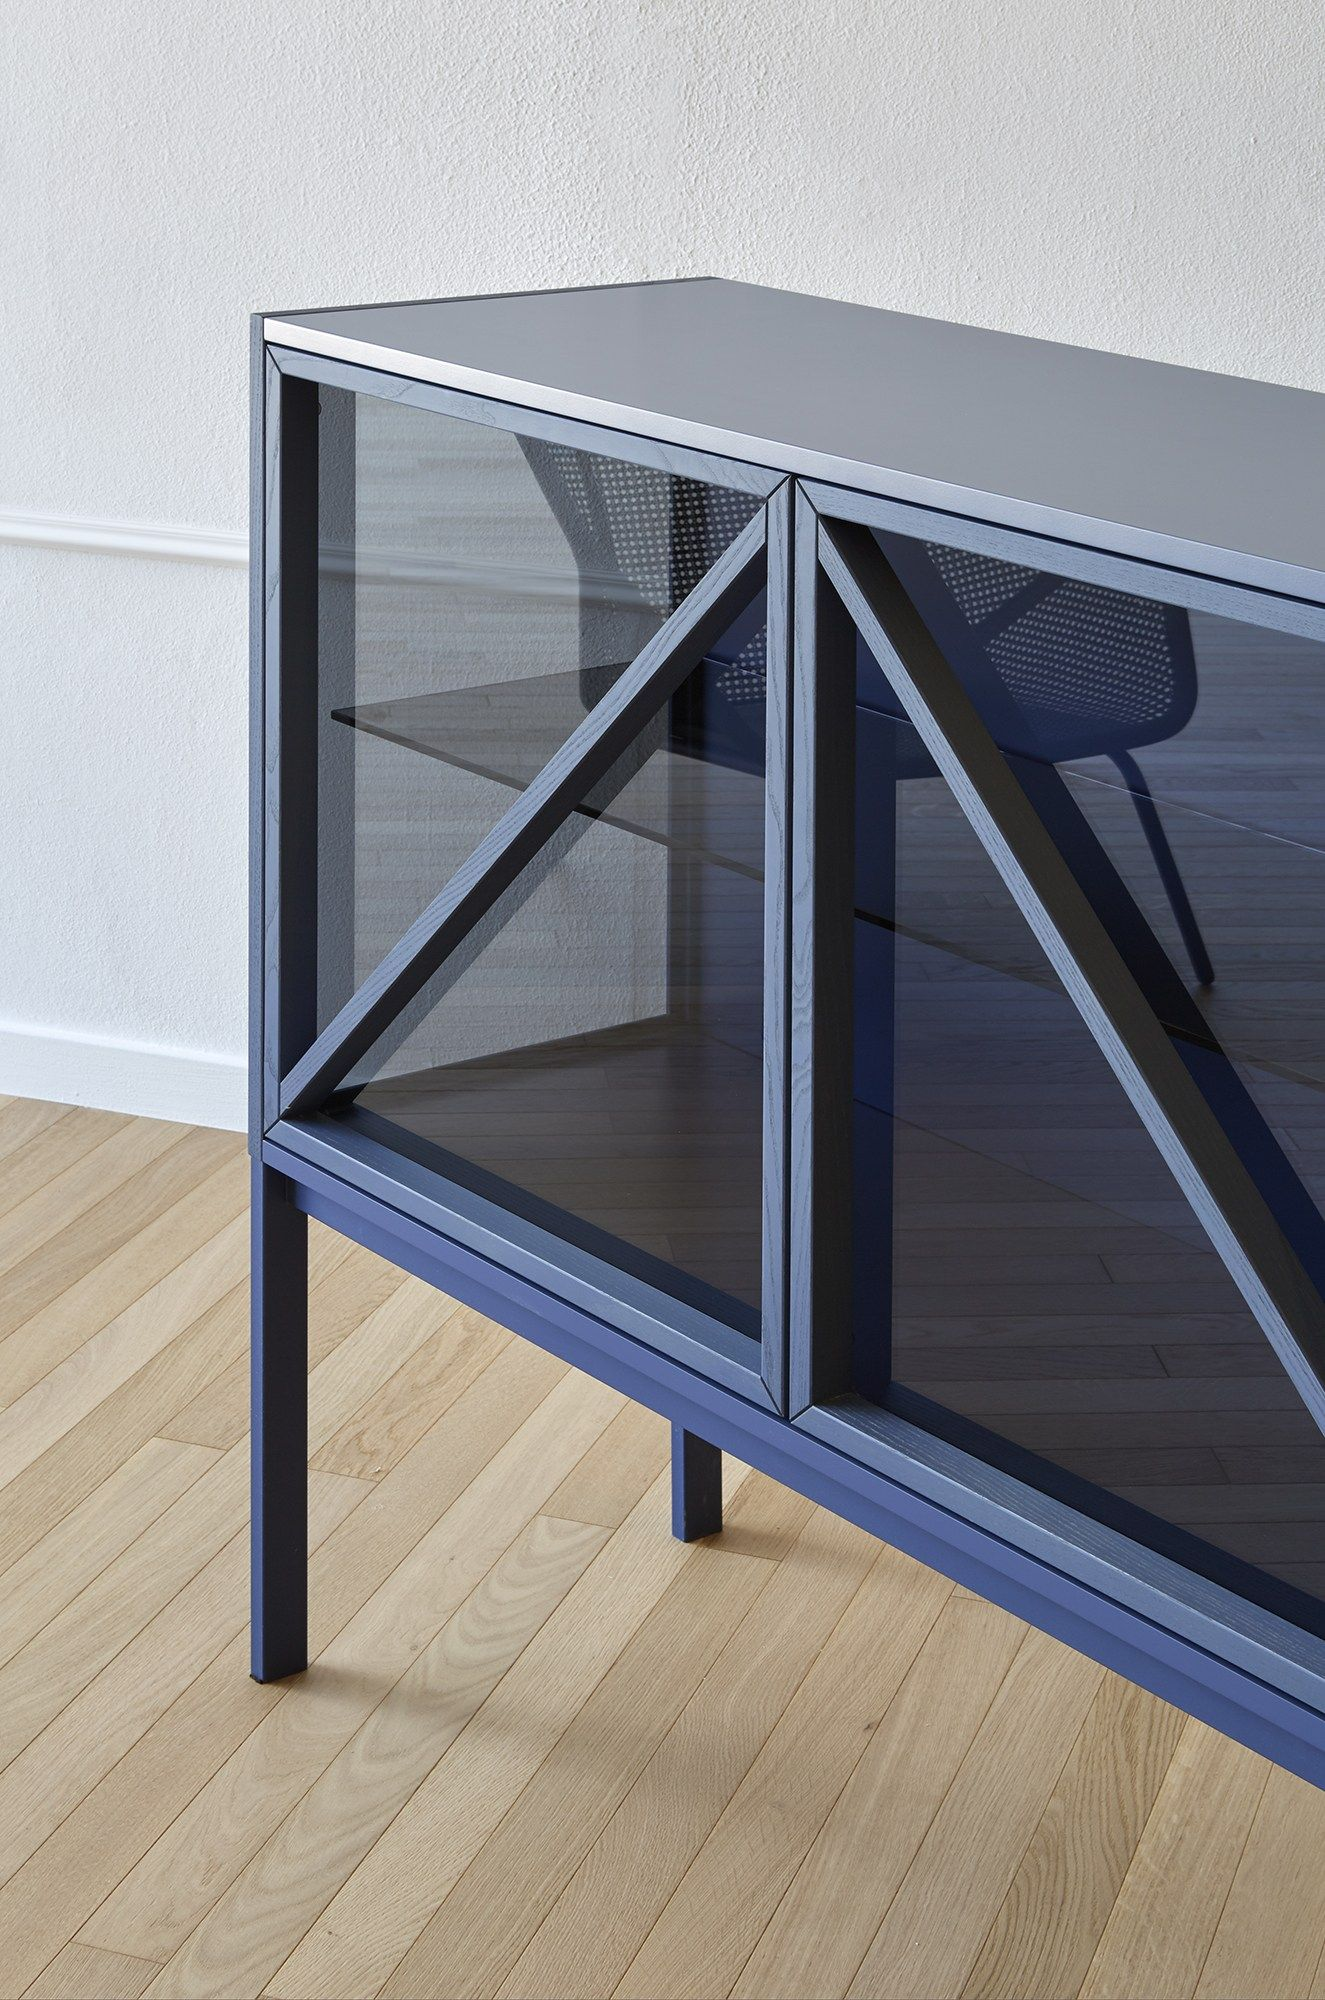 KRAMER | Sideboard | Glass sideboard, Doors and Interiors